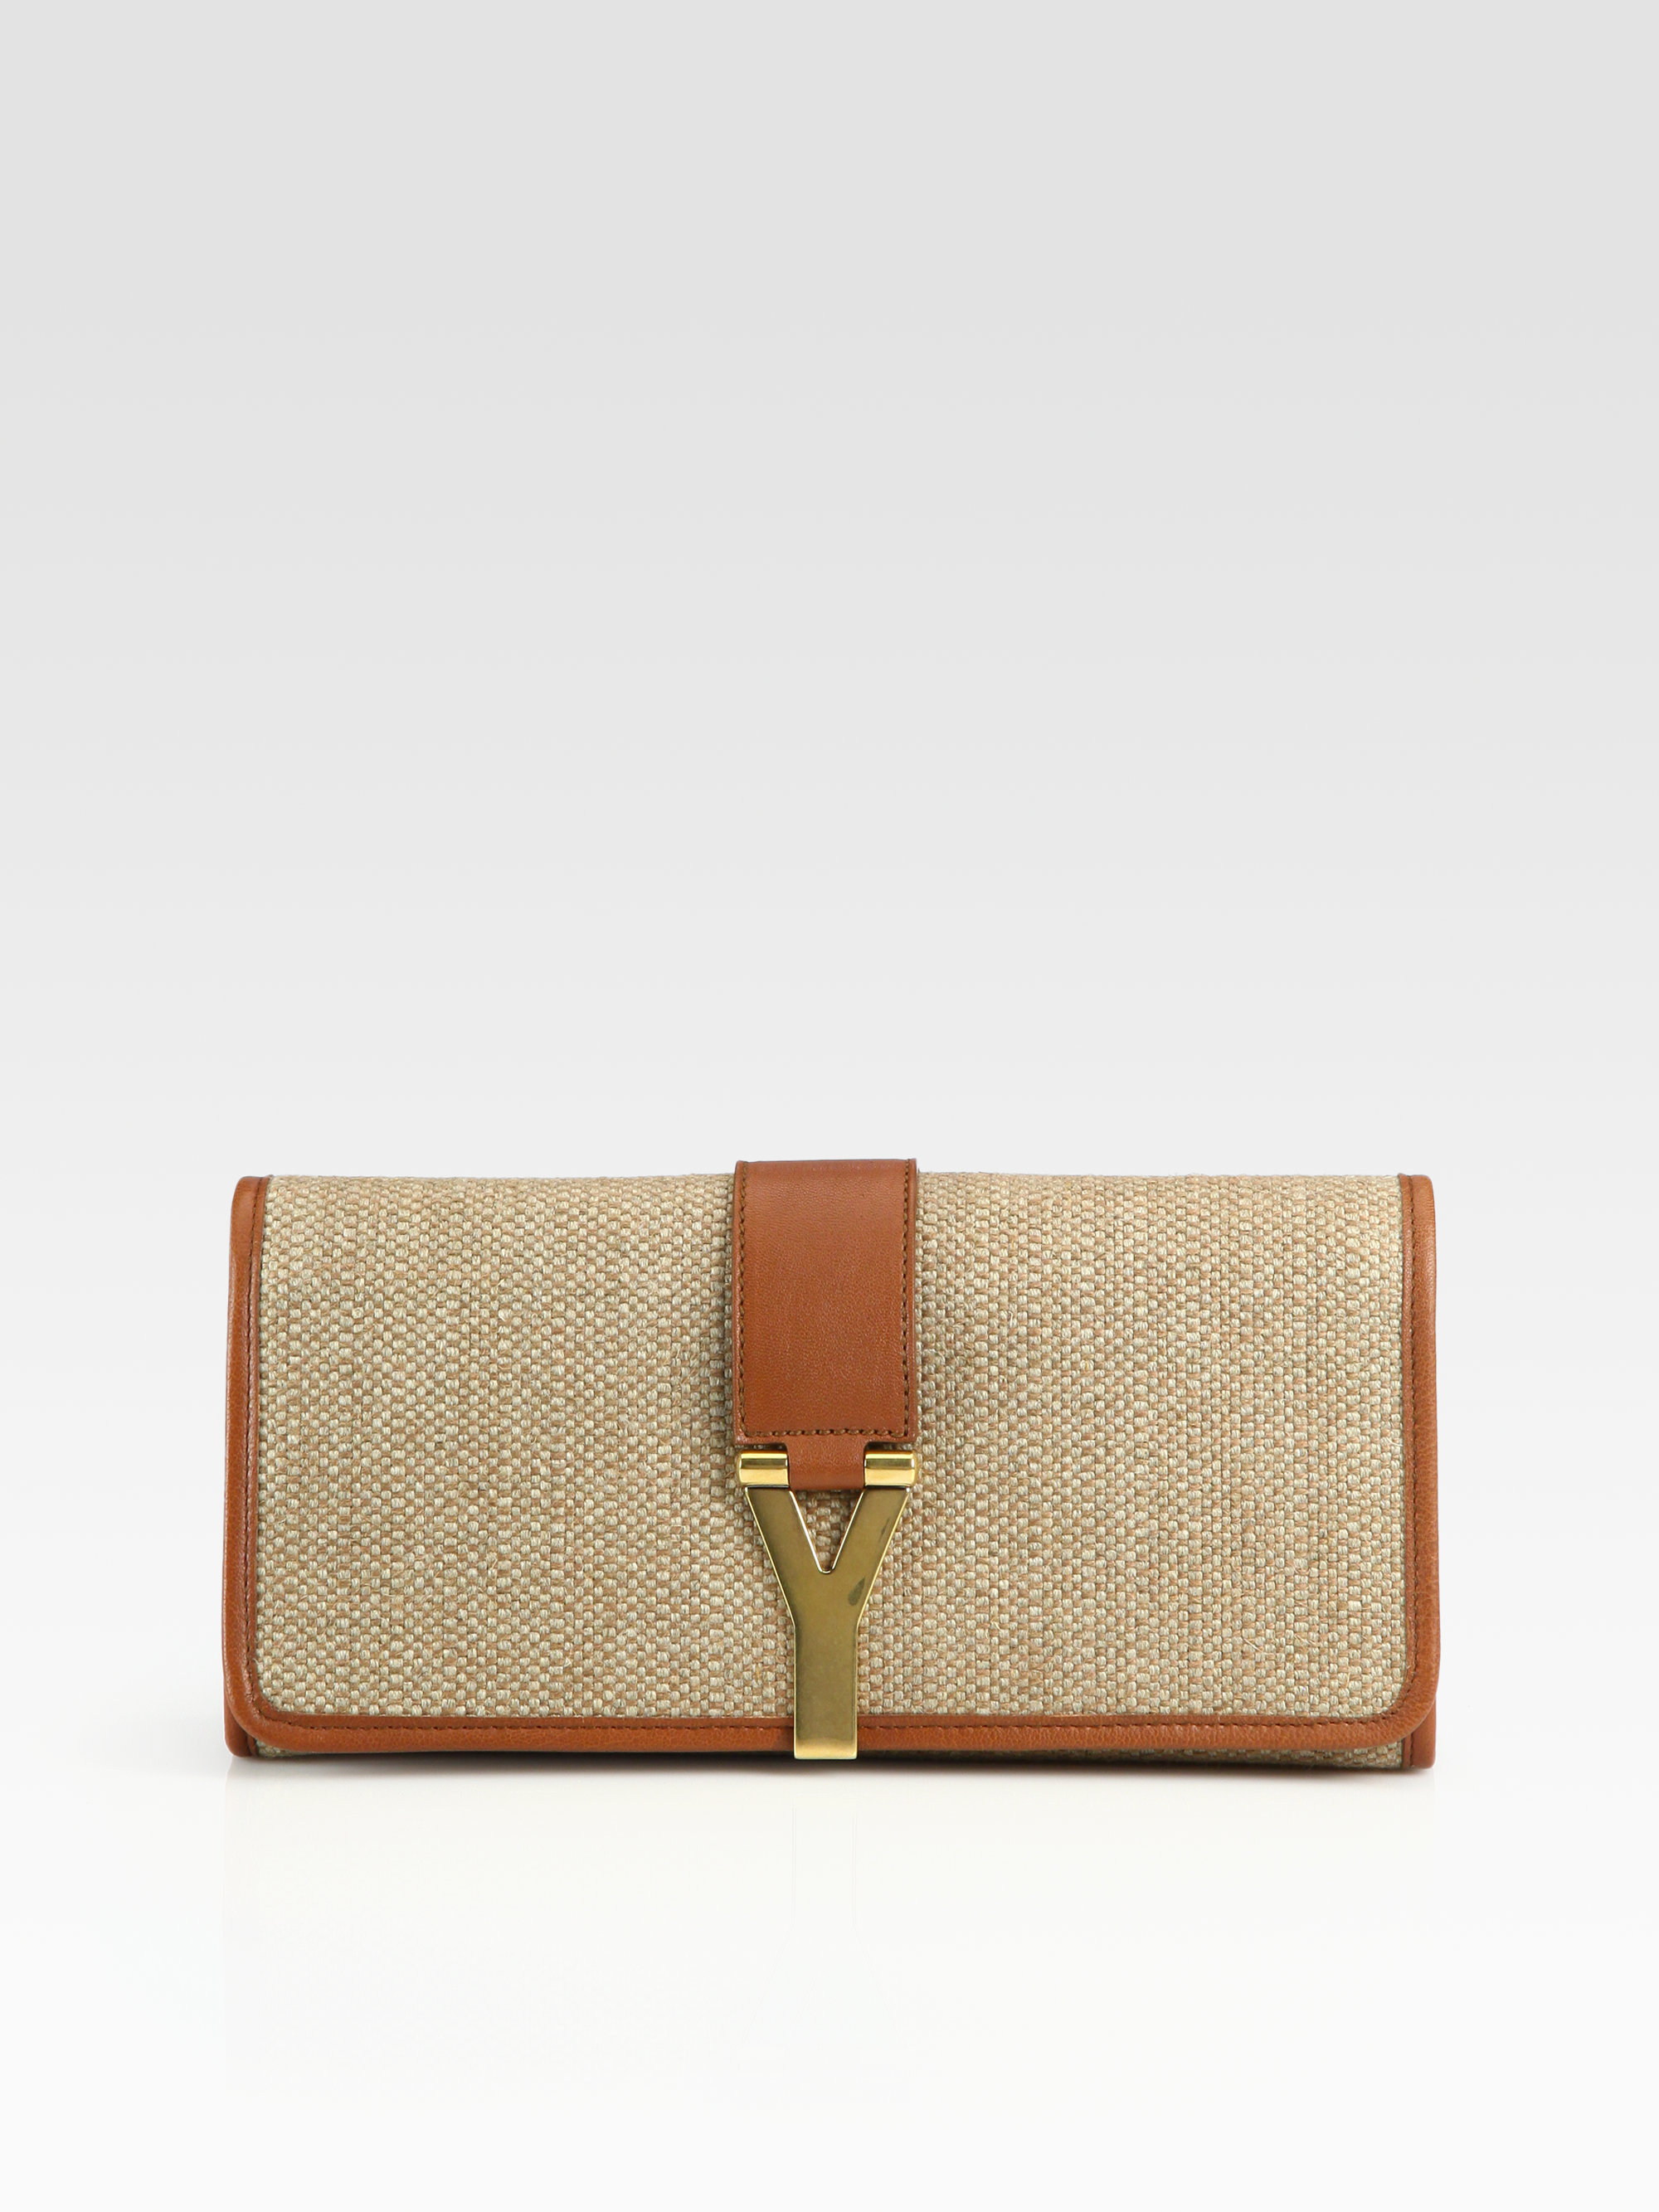 Saint laurent Ysl Chyc Large Linen Clutch in Gold (natural) | Lyst